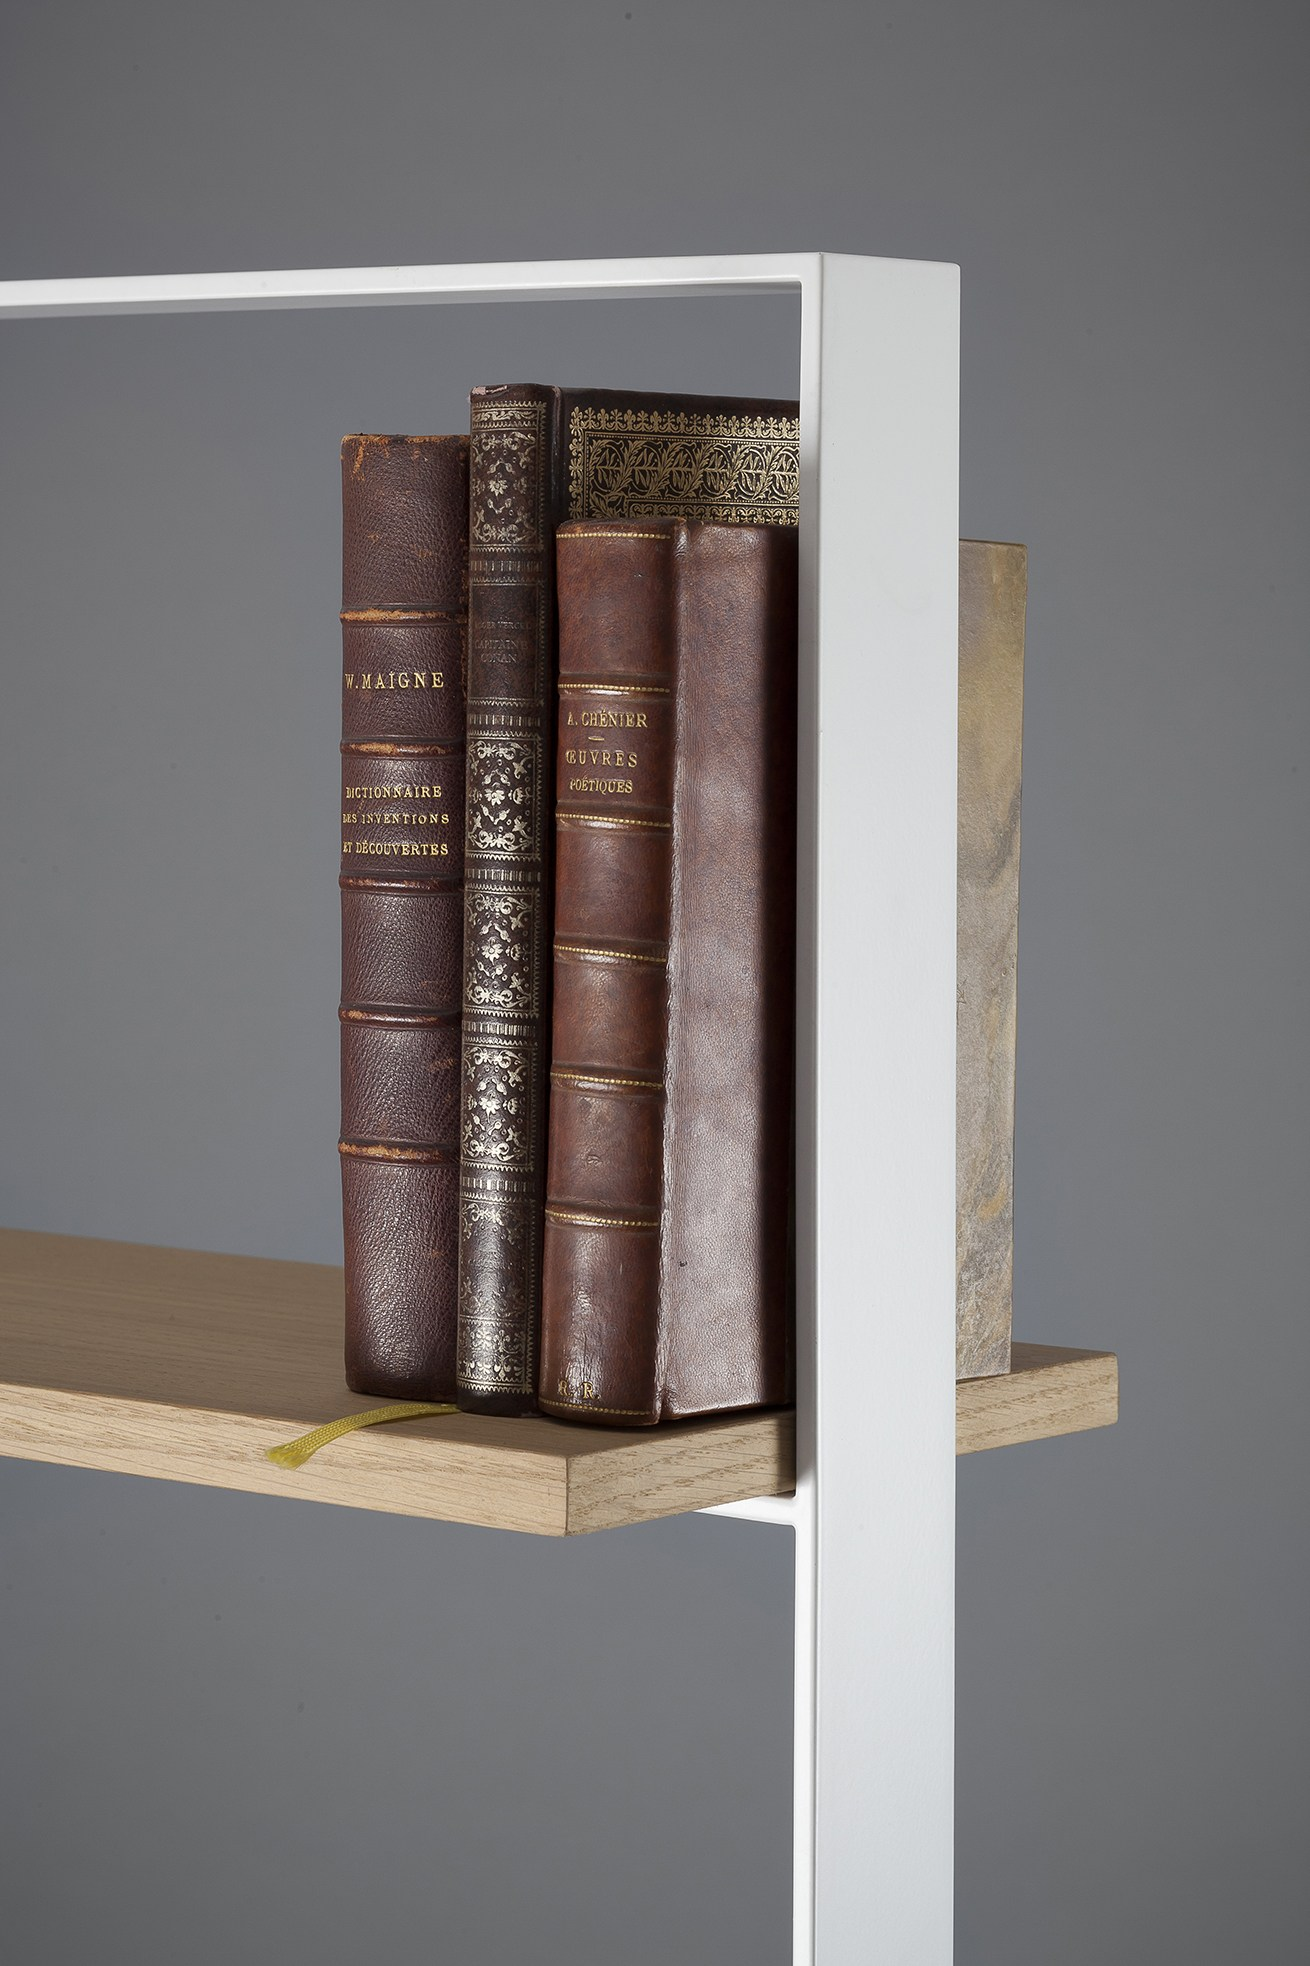 Striking The Severin Bookshelf Alex De Rouvray Exhibition